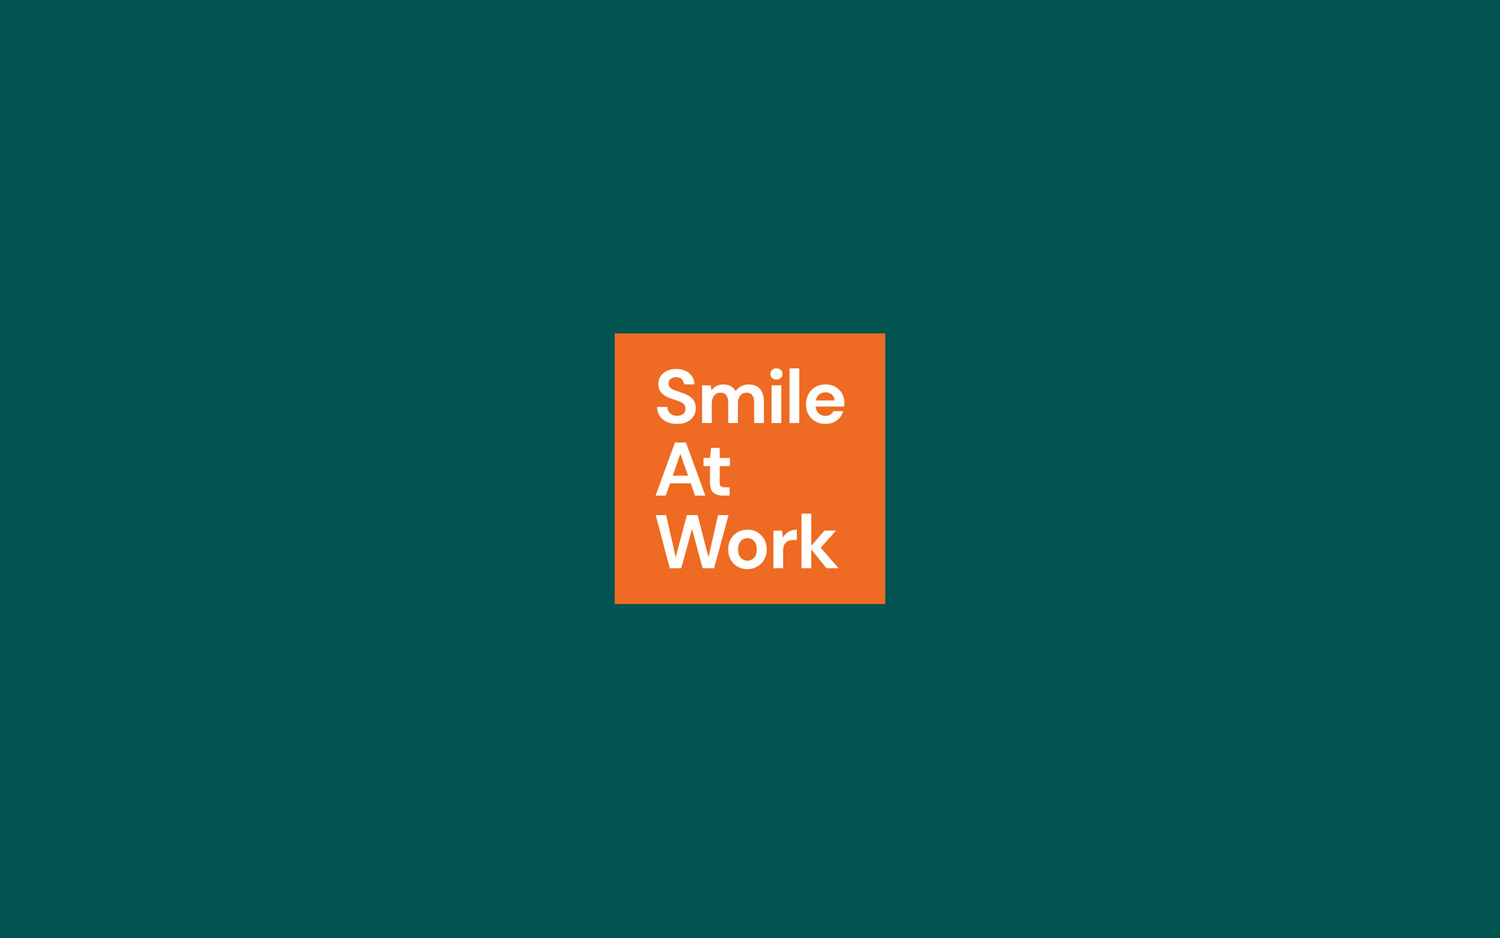 Closing-gallery_smile-at-work-logo_we-shift-si_2